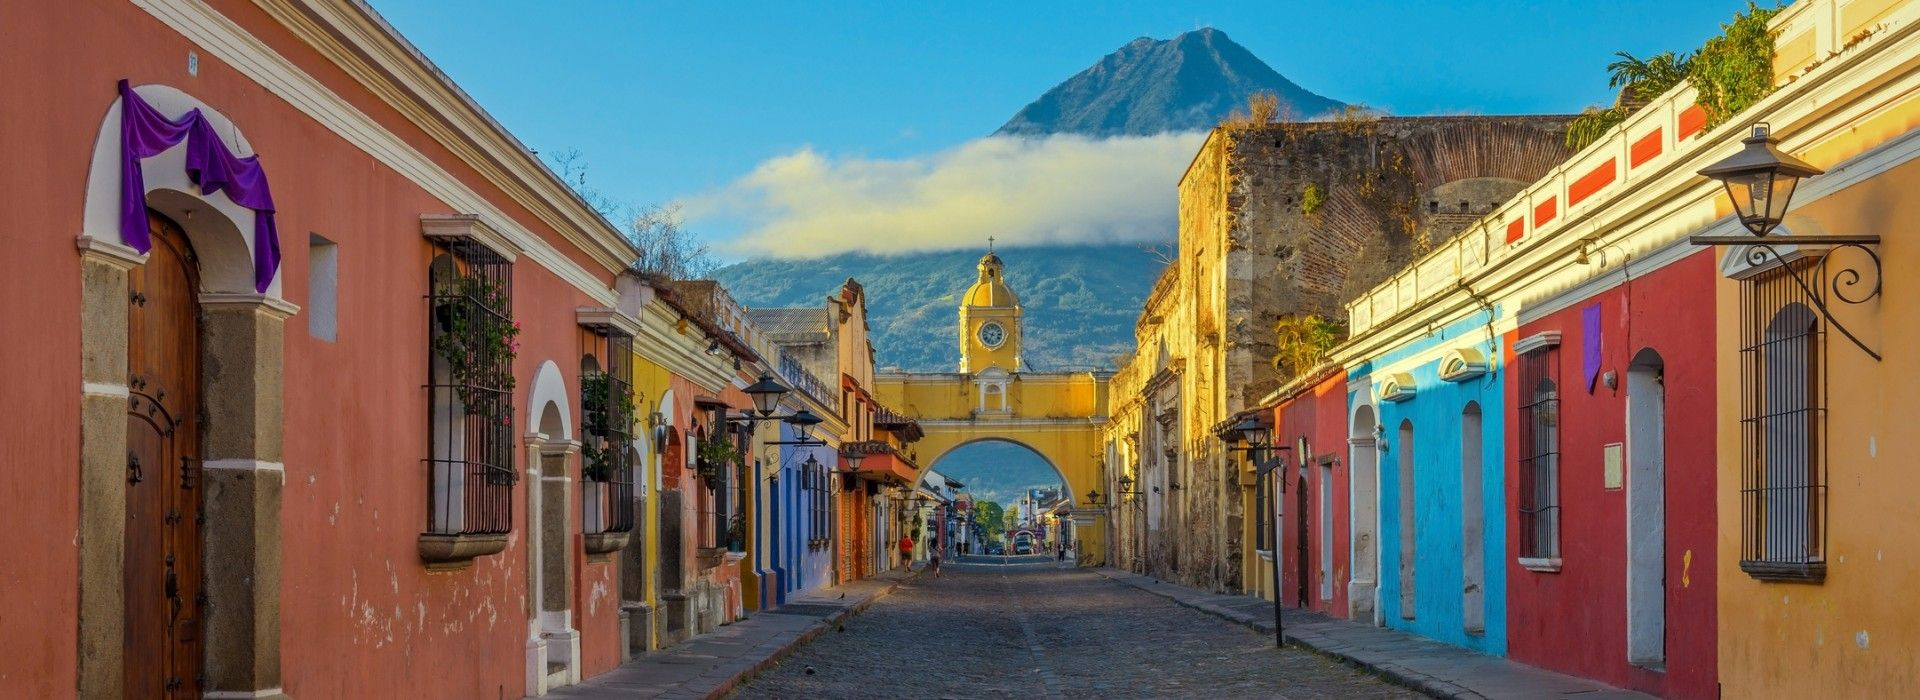 Sightseeing, attractions, culture and history Tours in Central America